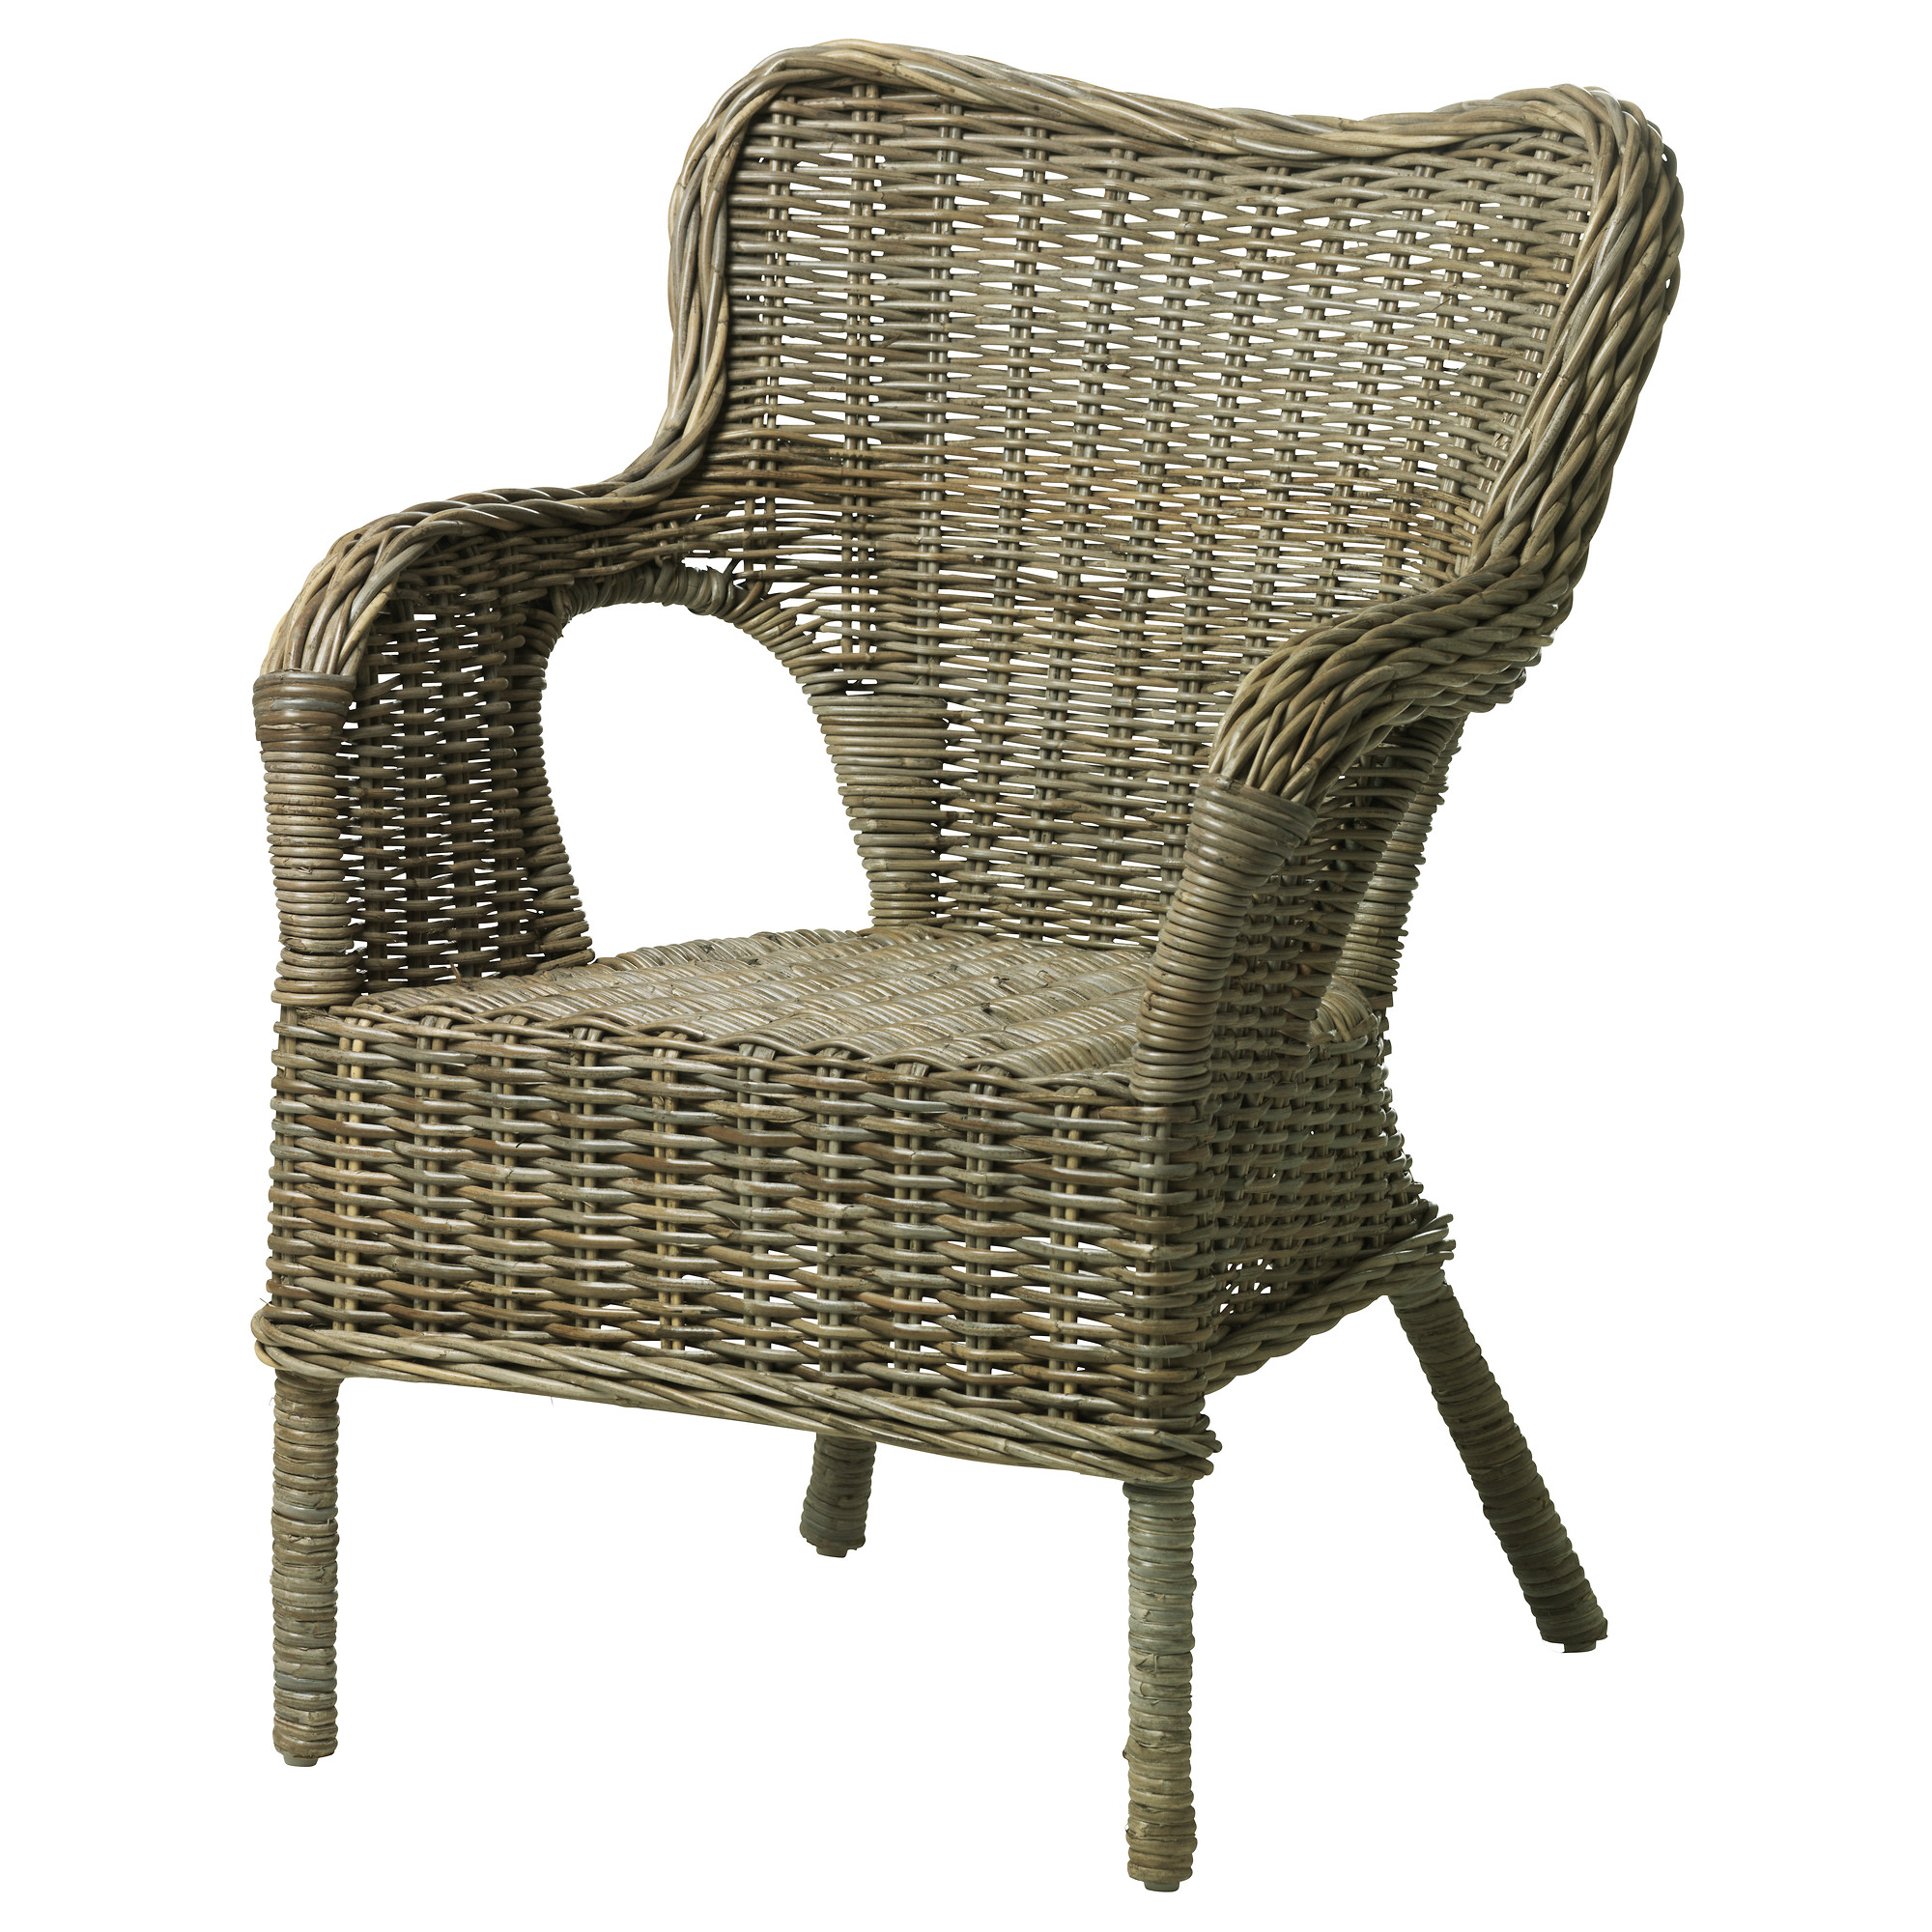 wicker chairs byholma armchair - ikea QMBPGWR